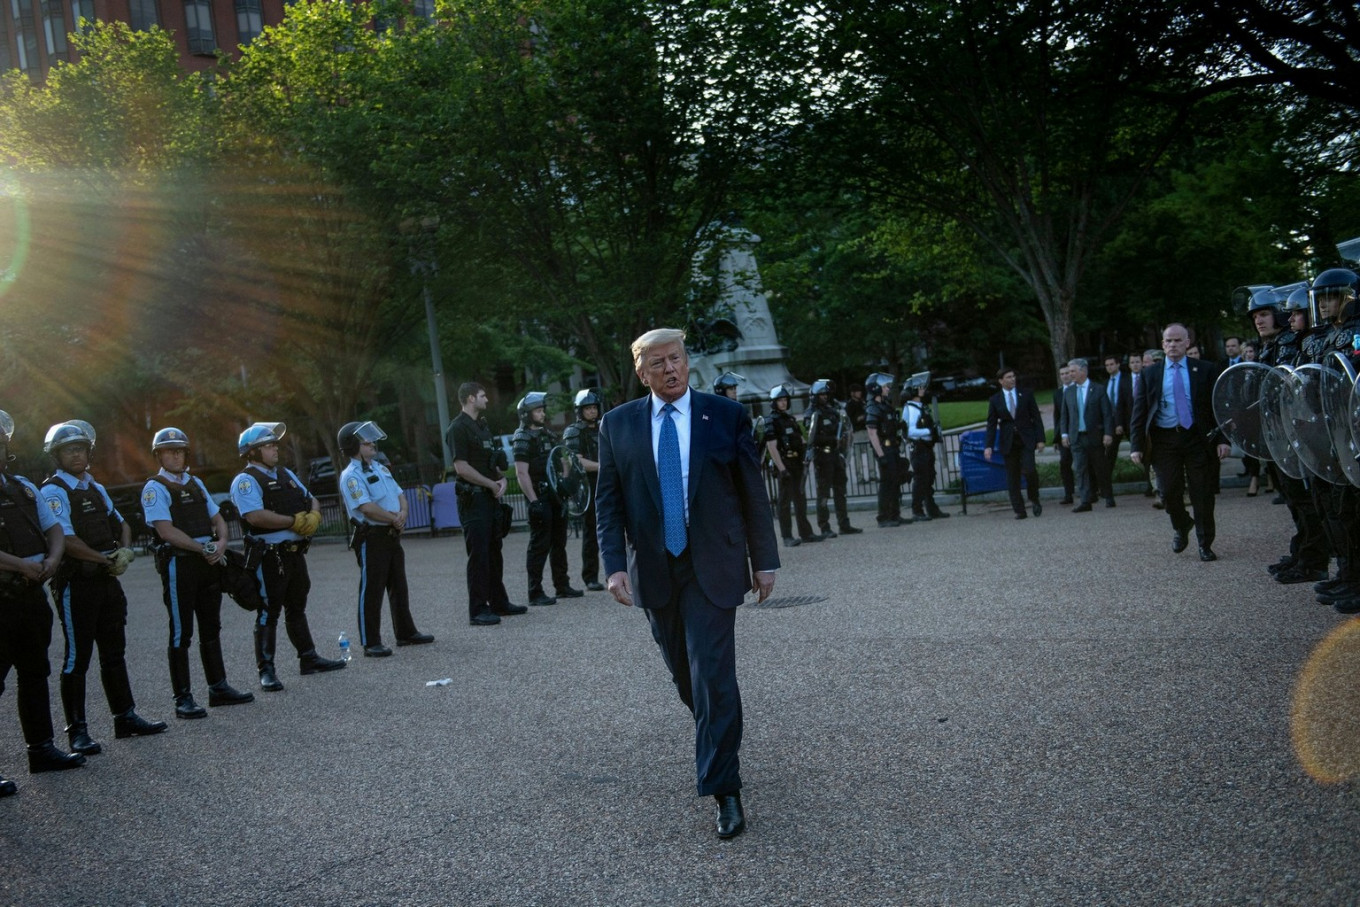 US President Donald Trump leaves the White House on foot to go to St John's Episcopal church across Lafayette Park in Washington, DC on June 1, 2020. - US President Donald Trump was due to make a televised address to the nation on Monday after days of anti-racism protests against police  brutality that have erupted into violence. The White House announced that the president would make remarks imminently after he has been criticized for not publicly addressing in the crisis in recent days. AFP/ Brendan Smialowski